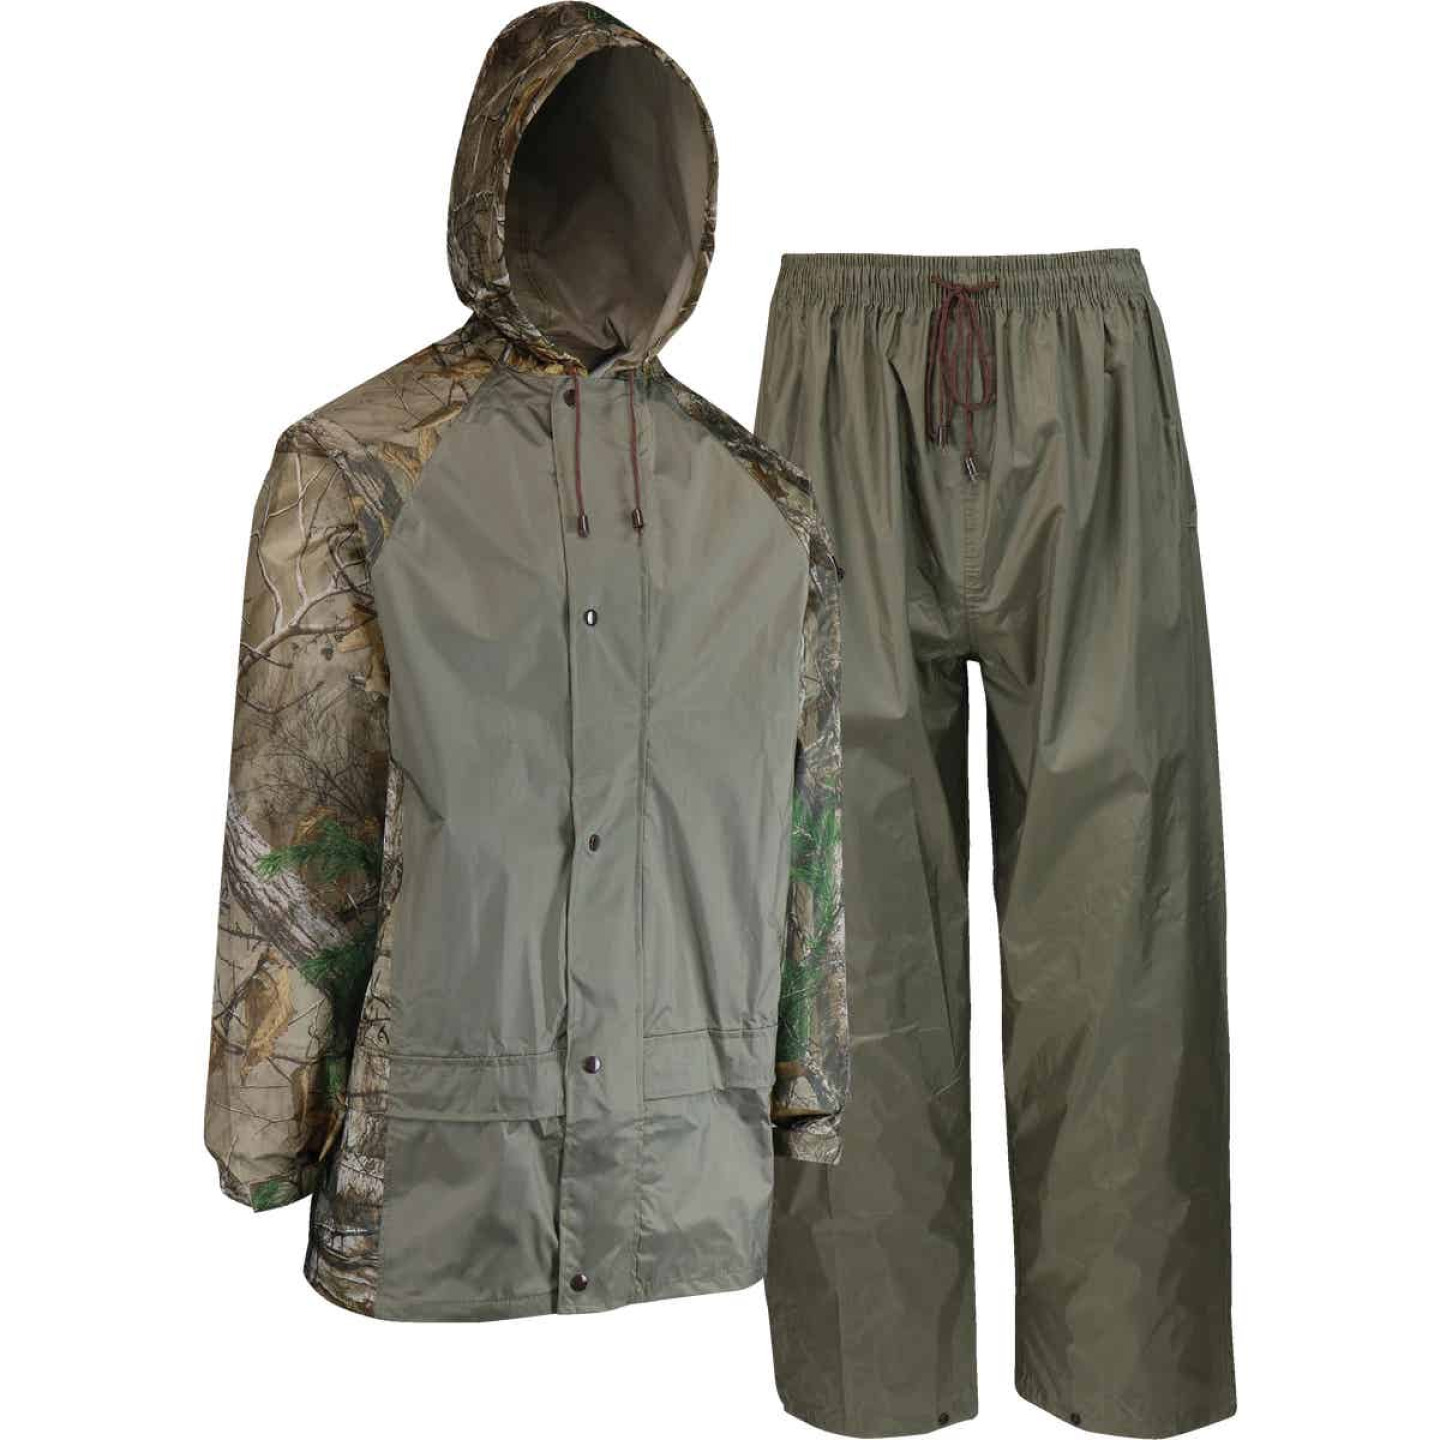 West Chester 2XL 2-Piece RealTree Camo Polyester Rain Suit Image 1